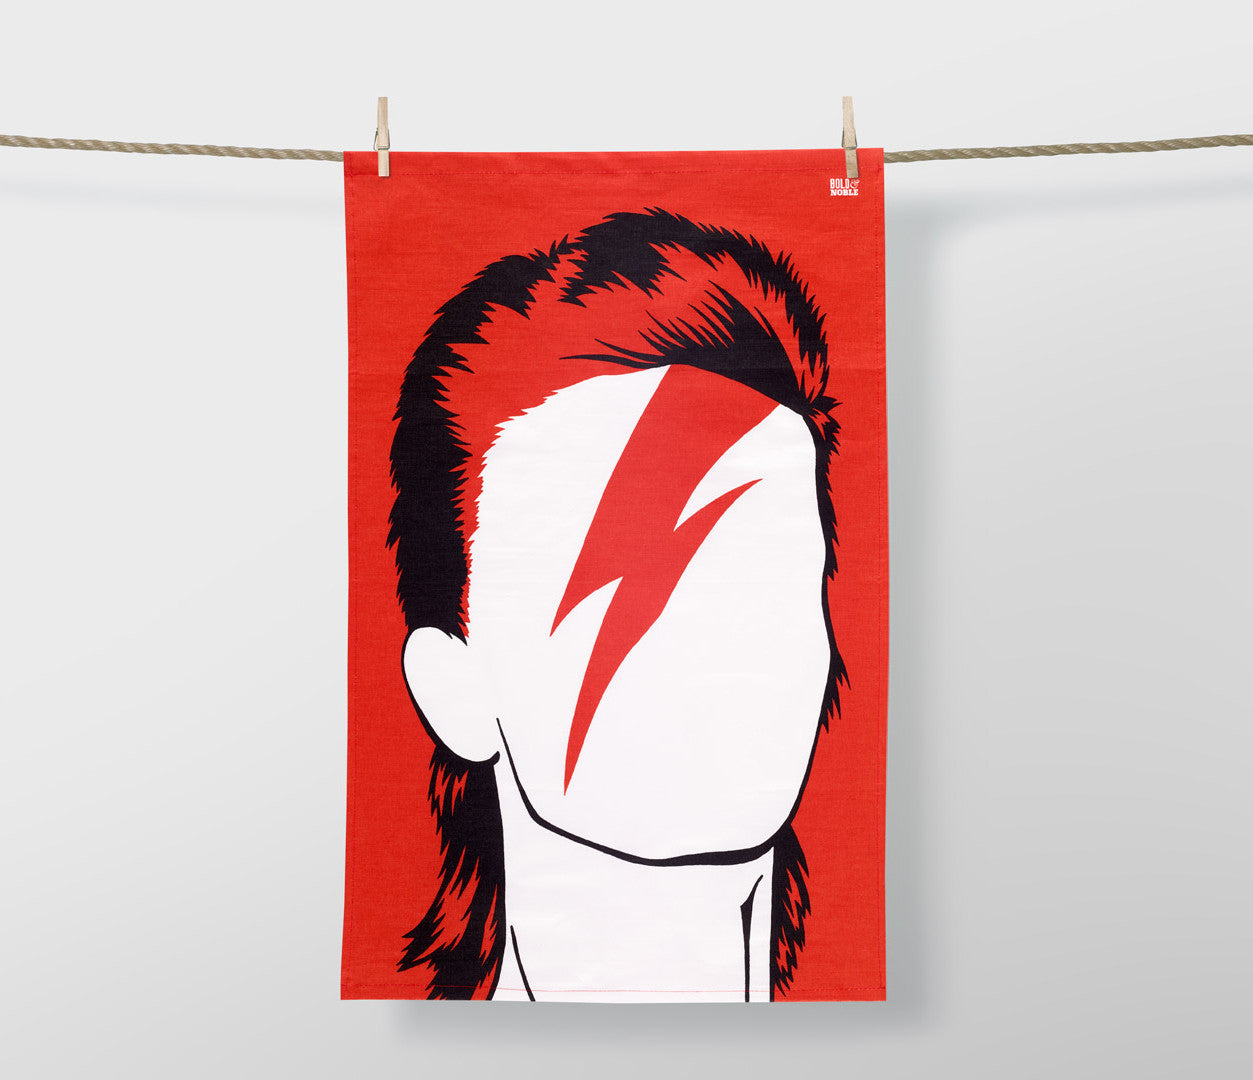 David Bowie Tea Towel in Dark Orange, screen printed in the UK